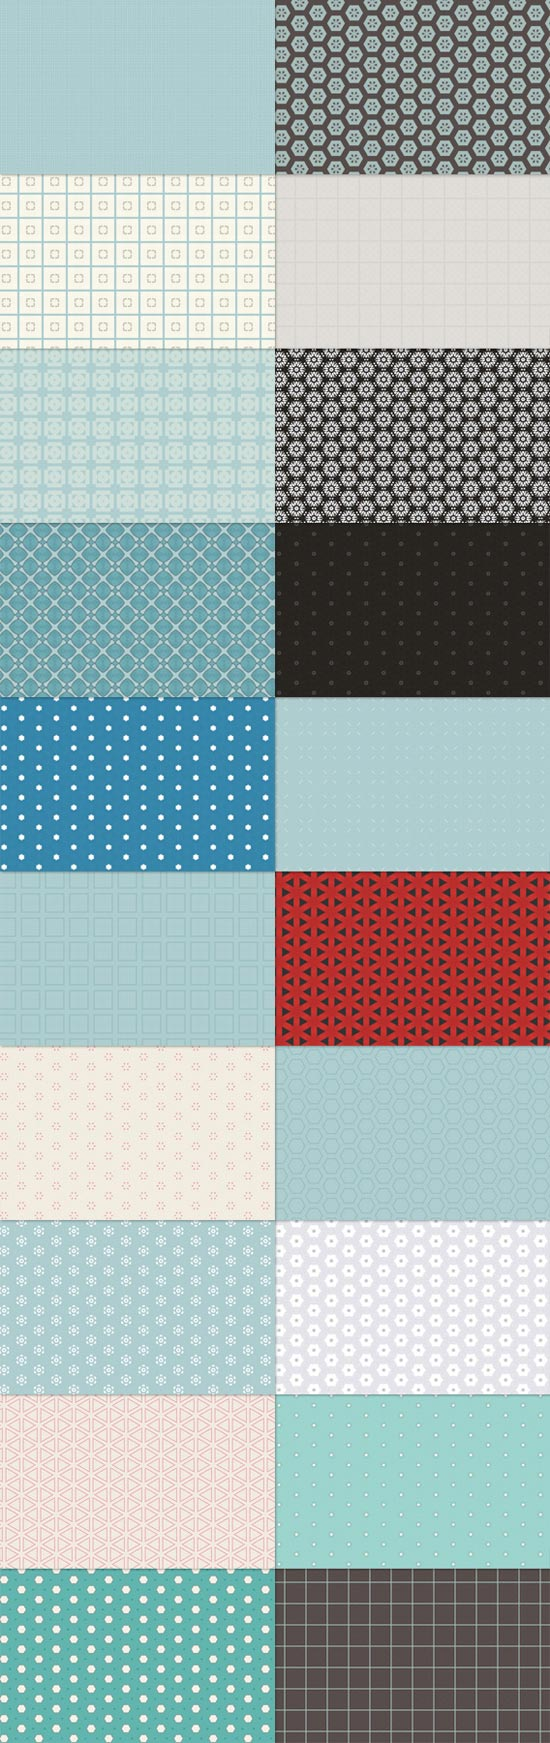 free_best_tileable_Photoshop-cs6-patterns